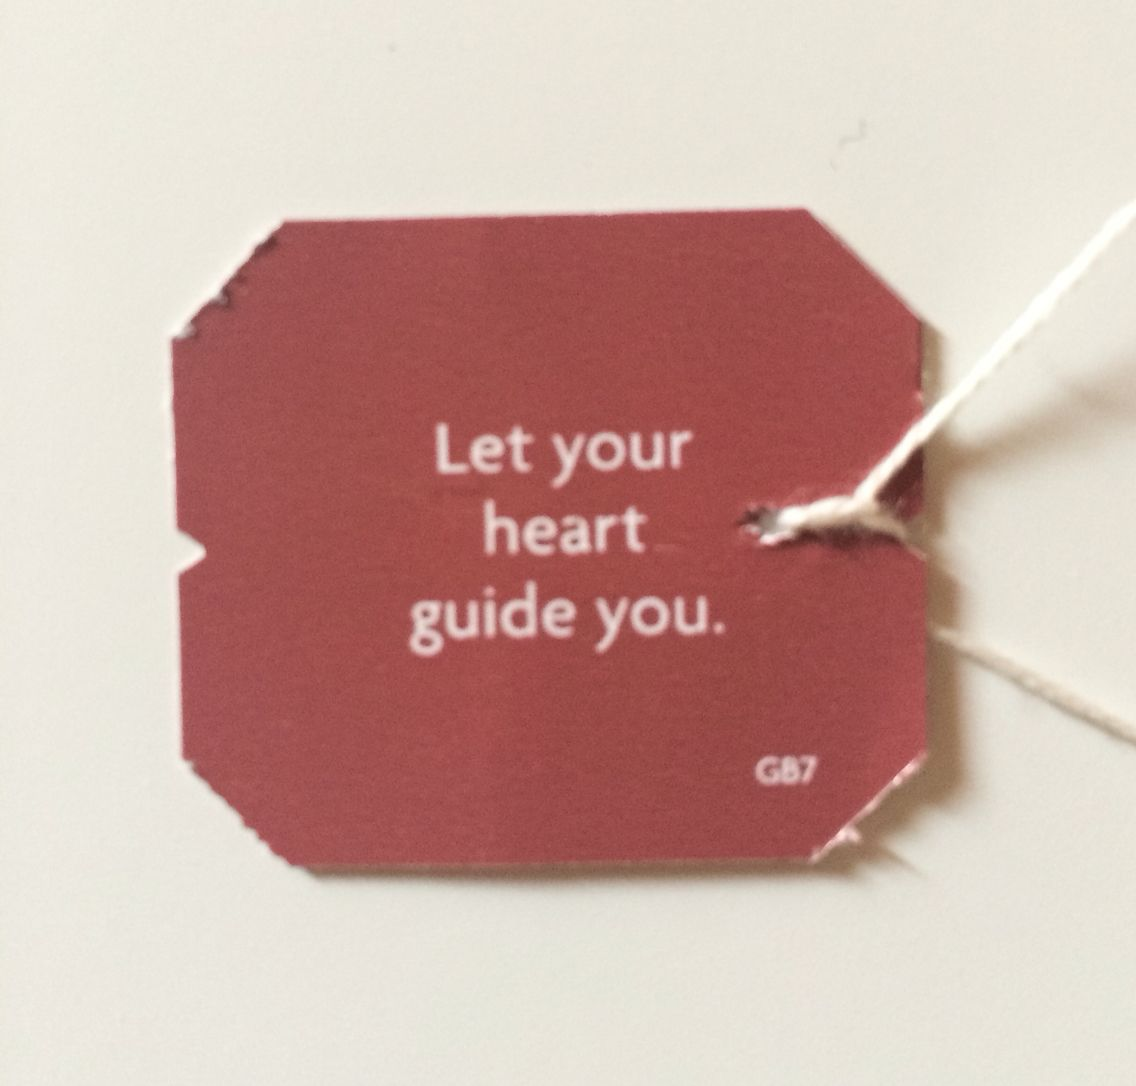 Let your heart guide you